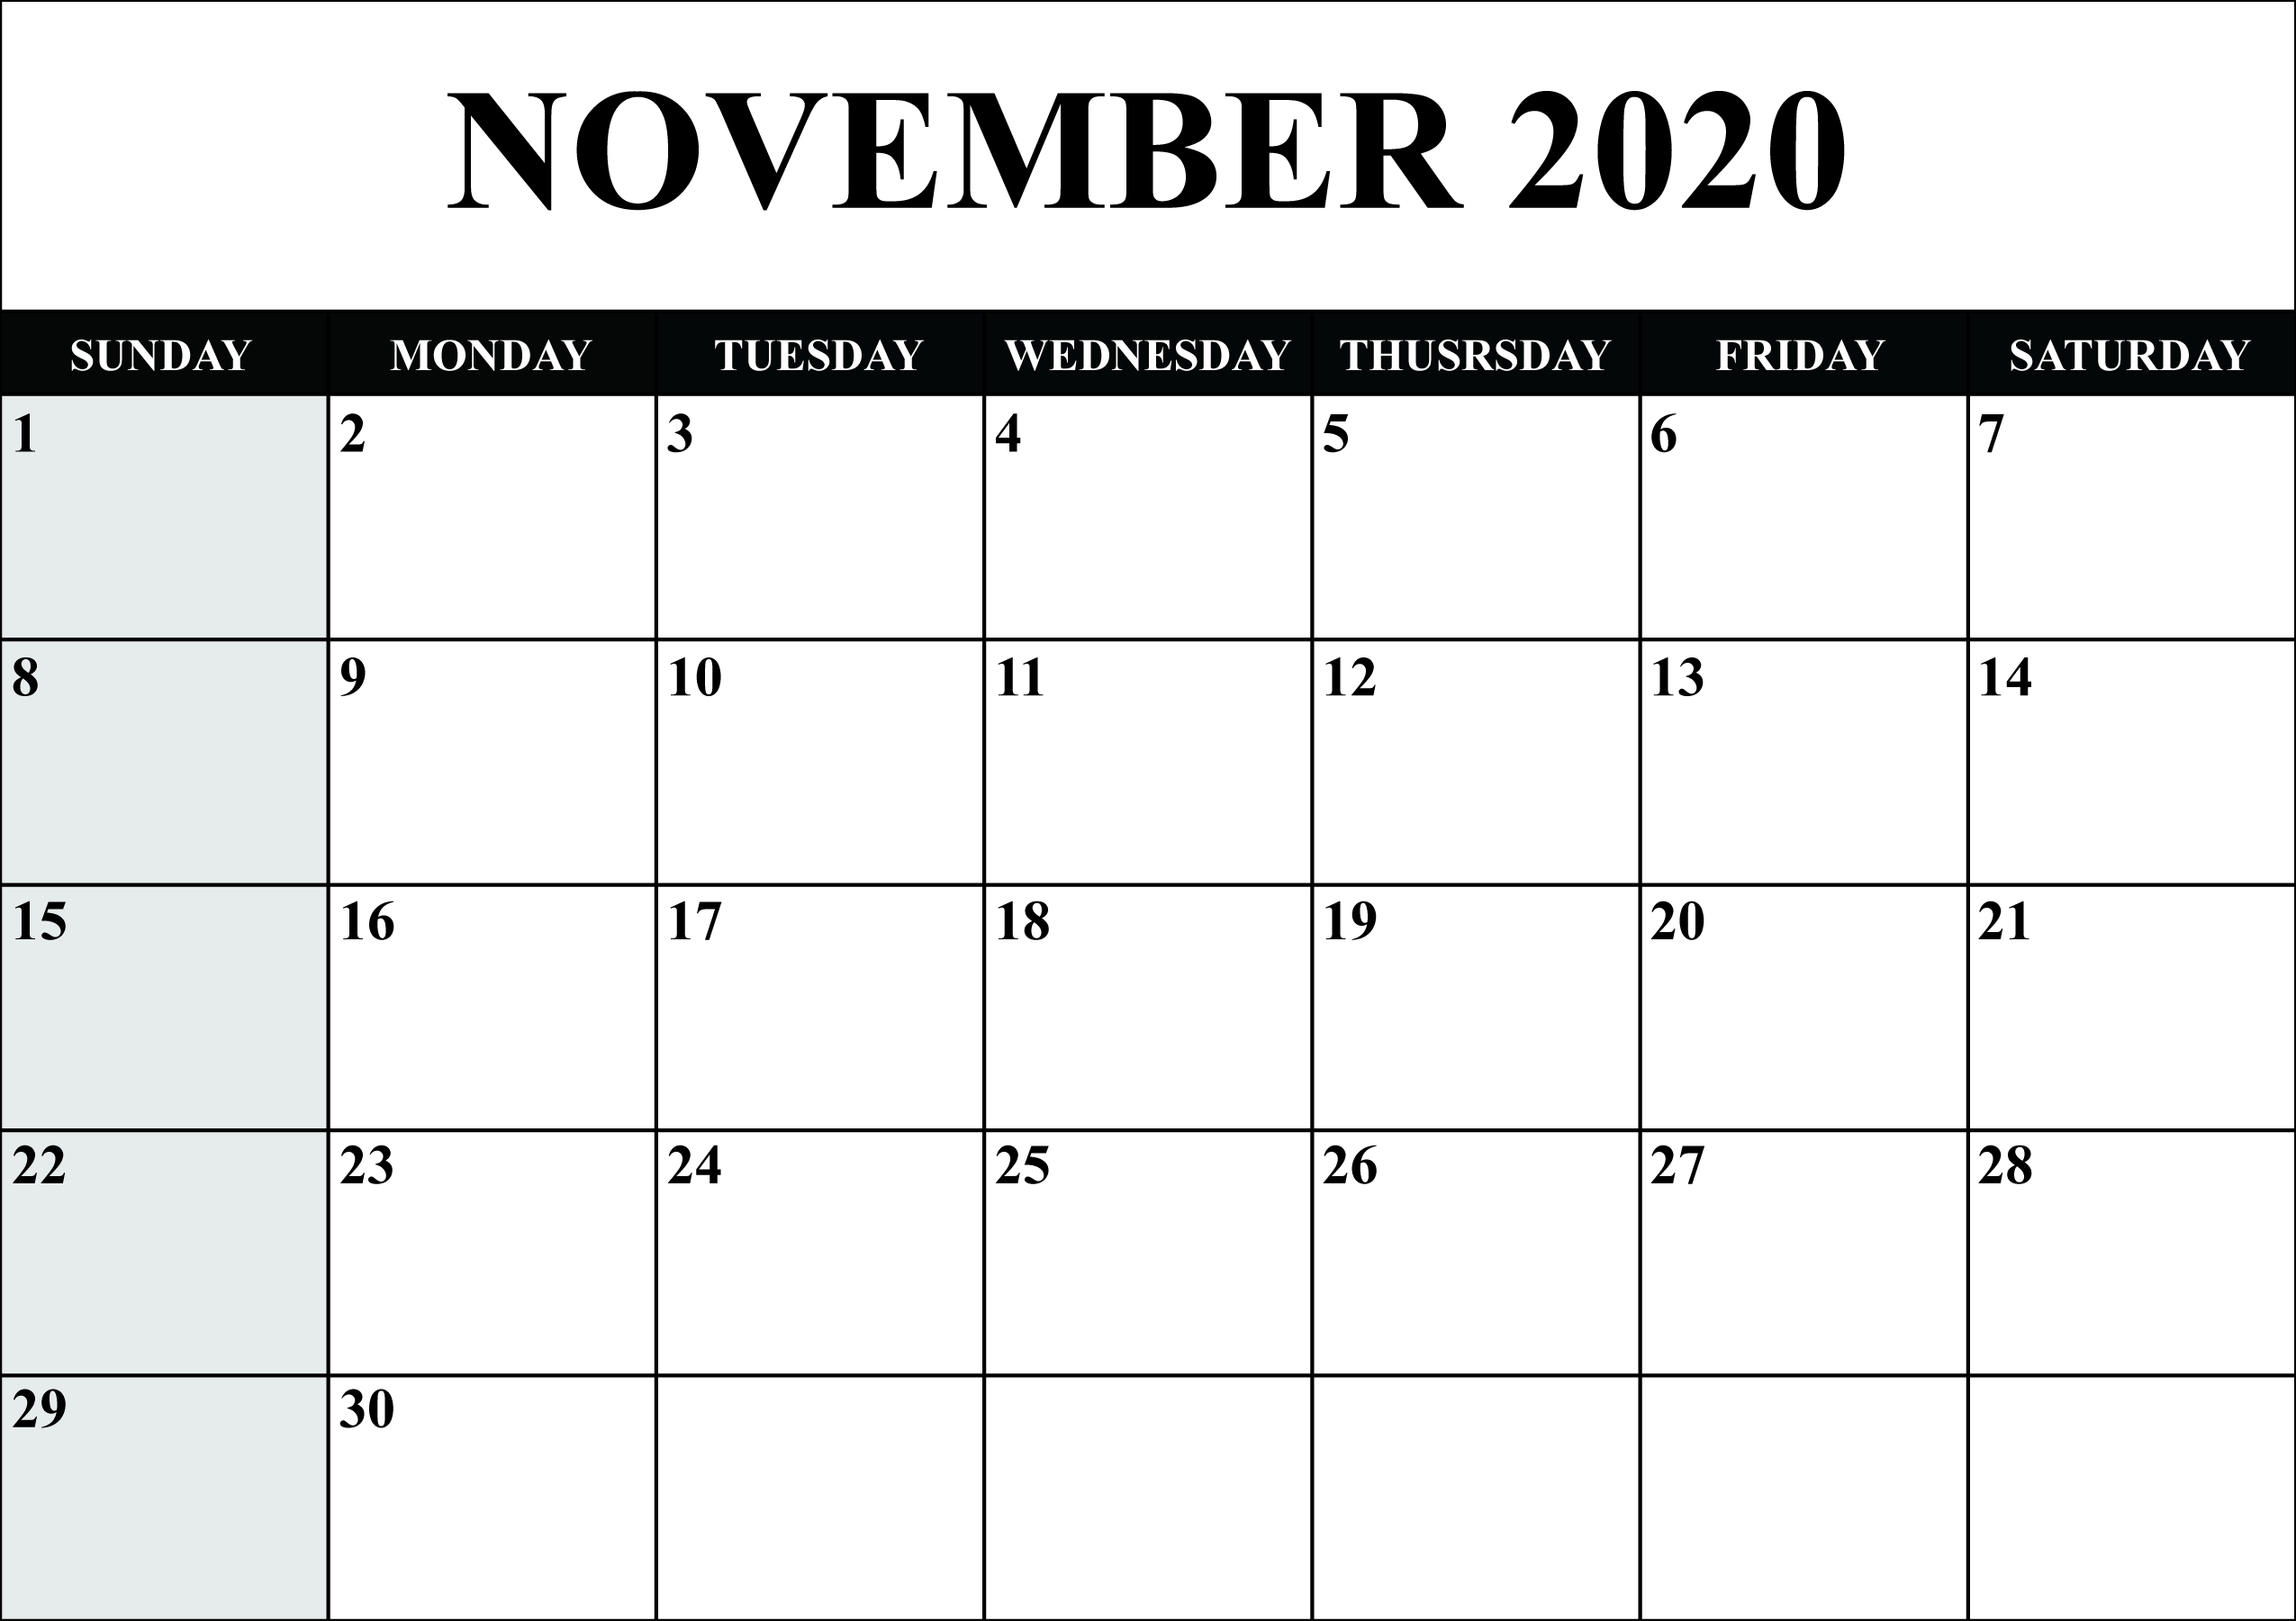 November 2020 Calendar PDF Word Excel Printable Template 2550x1800